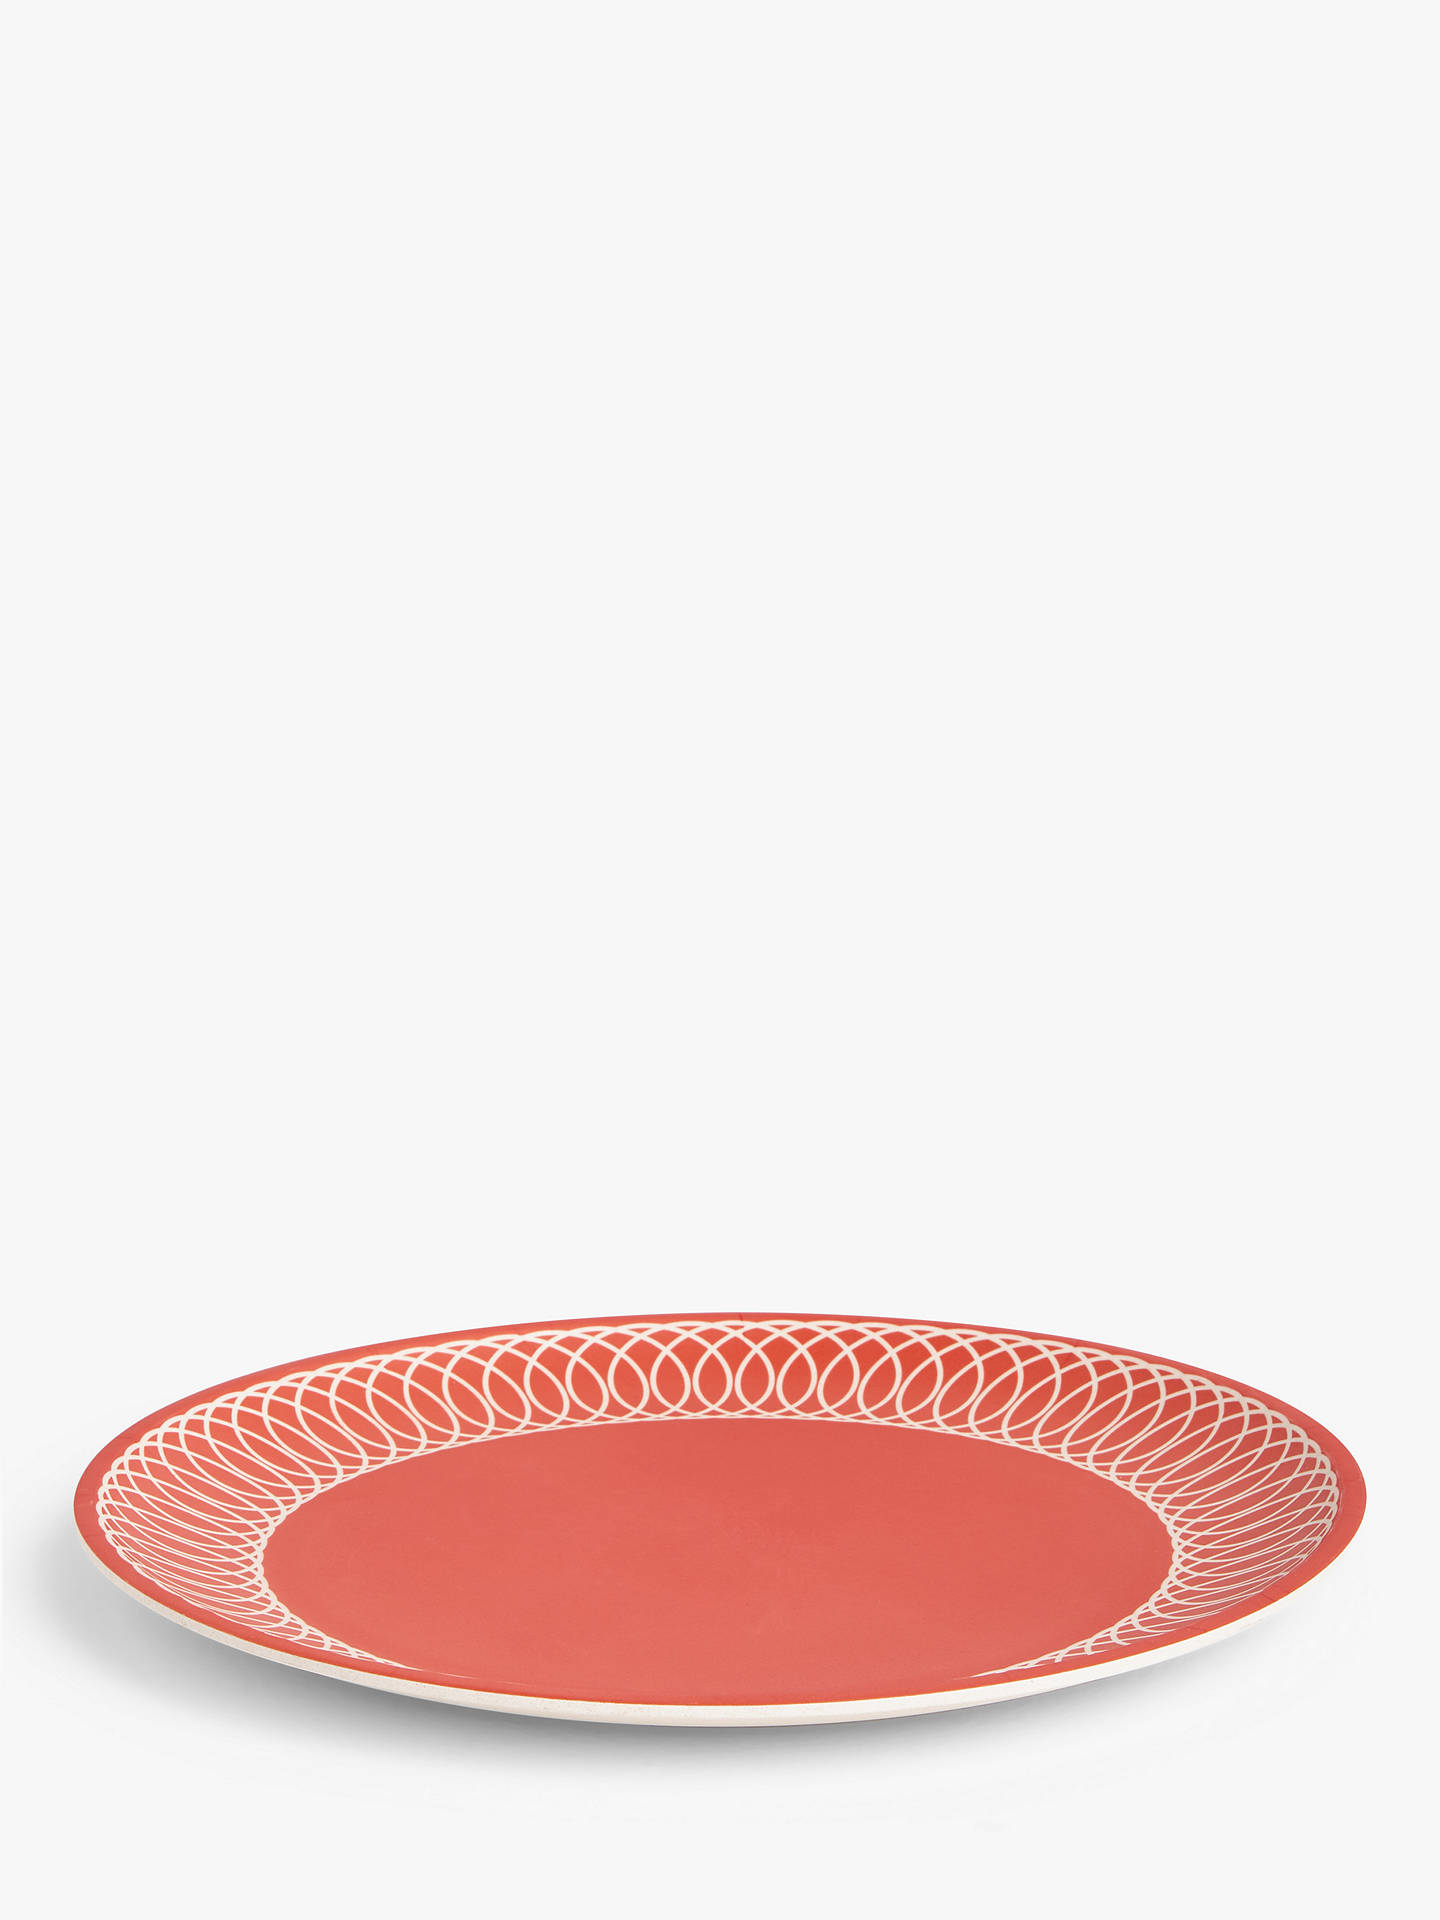 Buy LEON Bamboo Picnic Plates, 25cm, Set of 4, Assorted Online at johnlewis.com